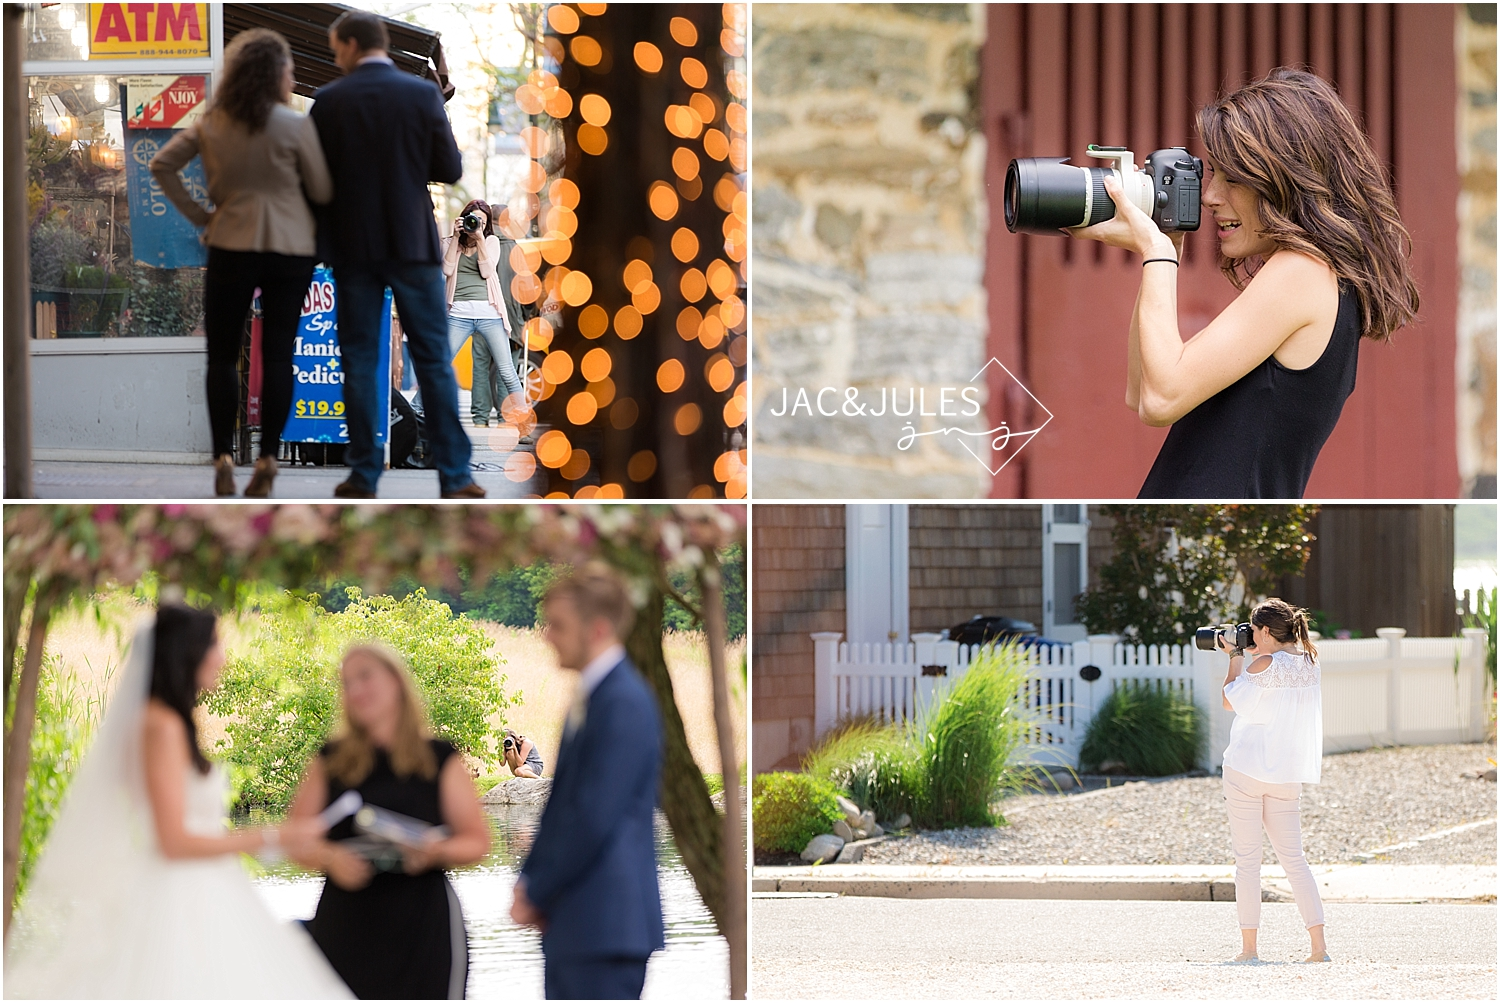 jacnjules goes behind the scenes with nj wedding and family photography